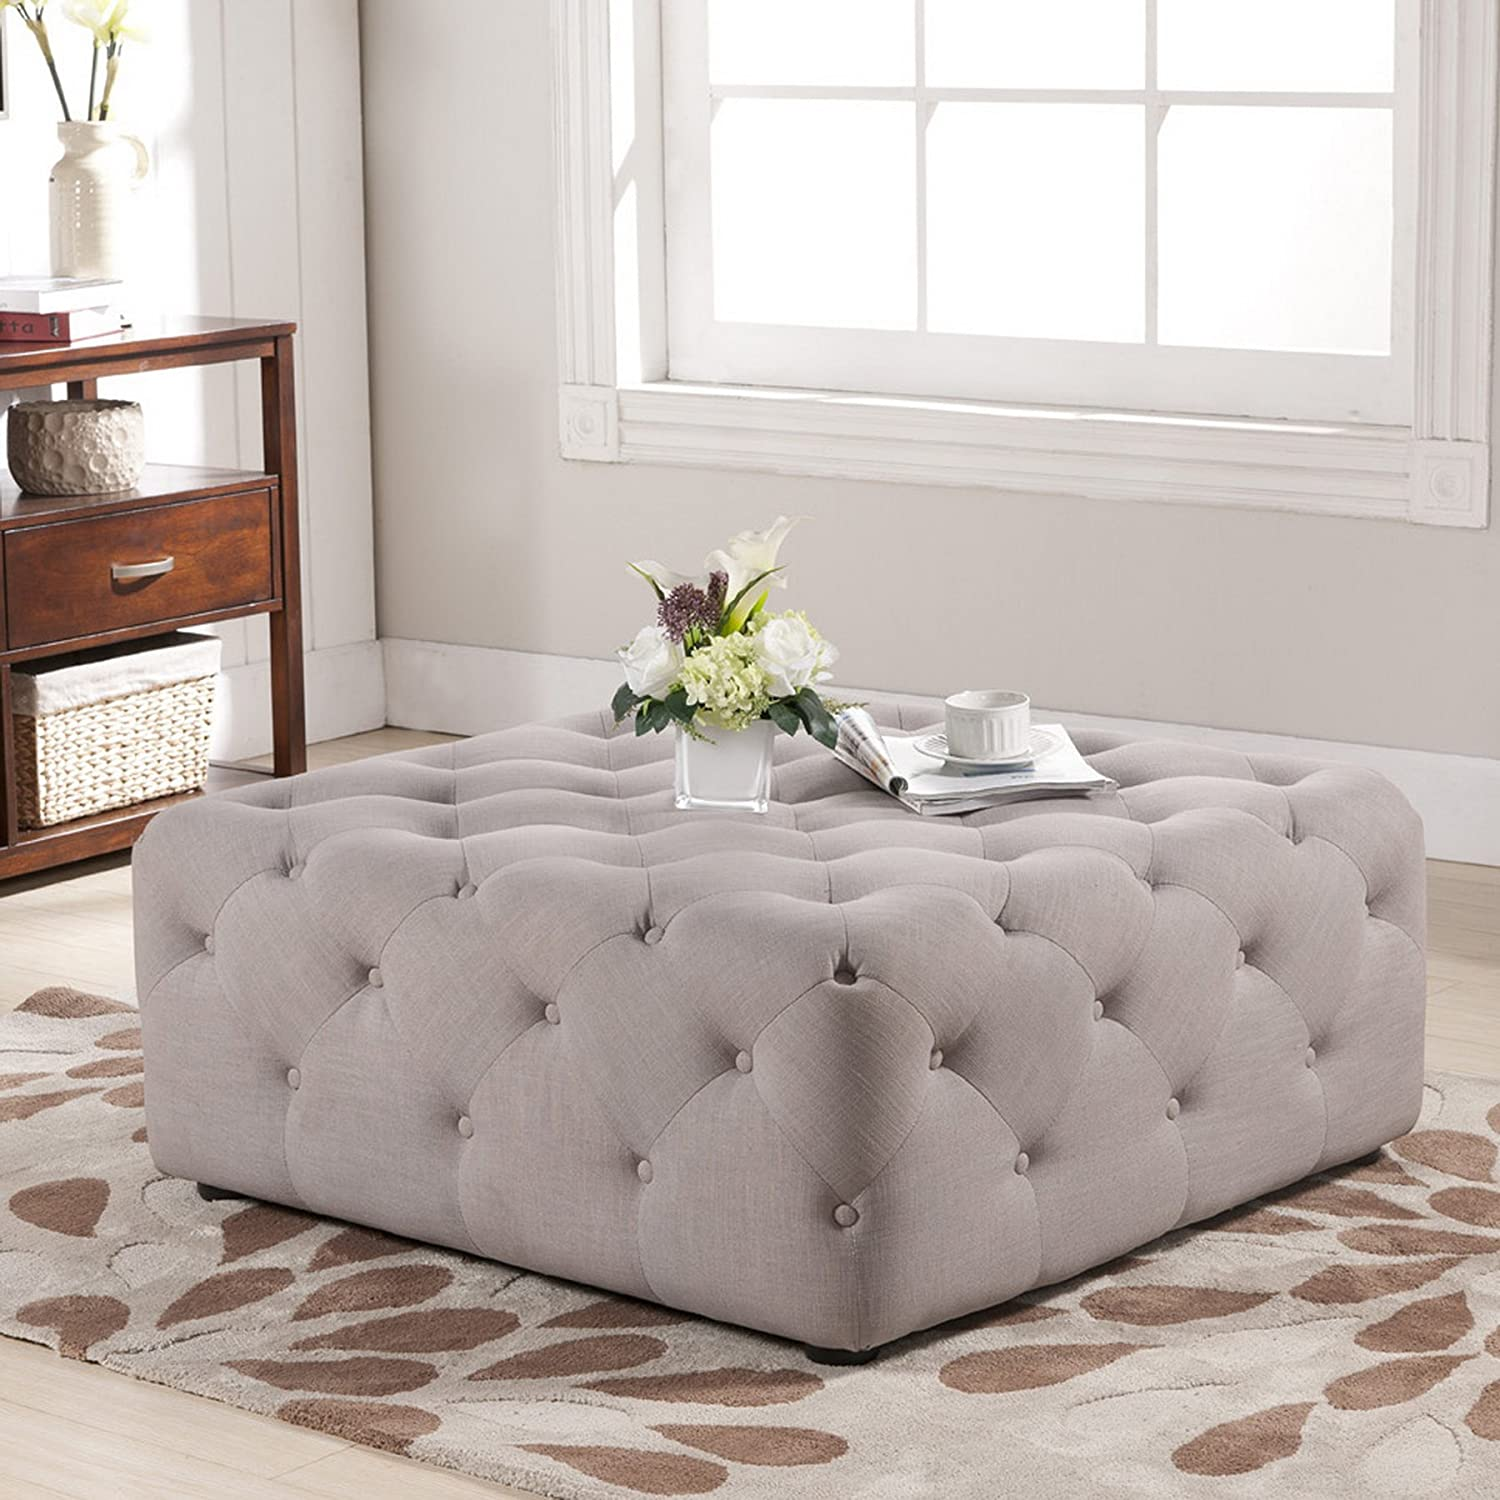 Amazon baxton studio teague linen modern tufted ottoman amazon baxton studio teague linen modern tufted ottoman beige kitchen dining geotapseo Images